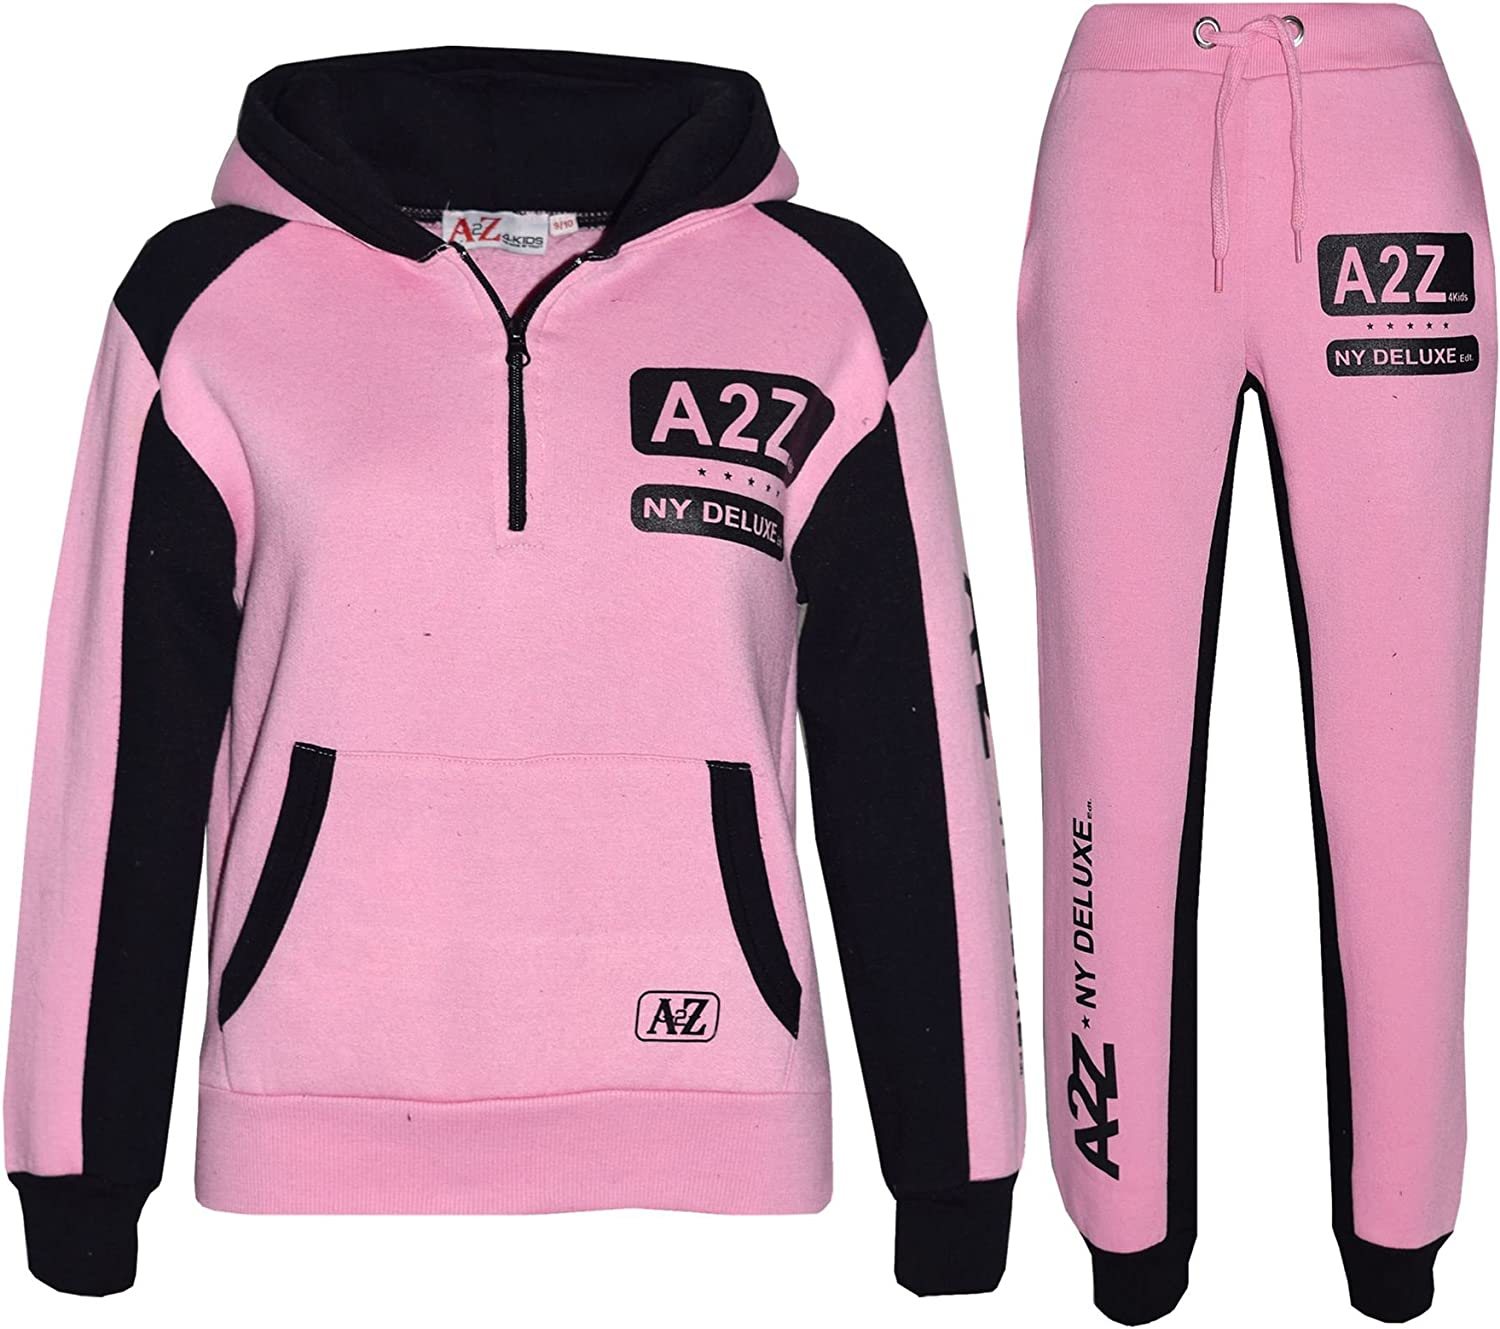 Kids Jogging Suit Boys Girls Designers Tracksuit Zipped Top /& Bottom 5-13 Years